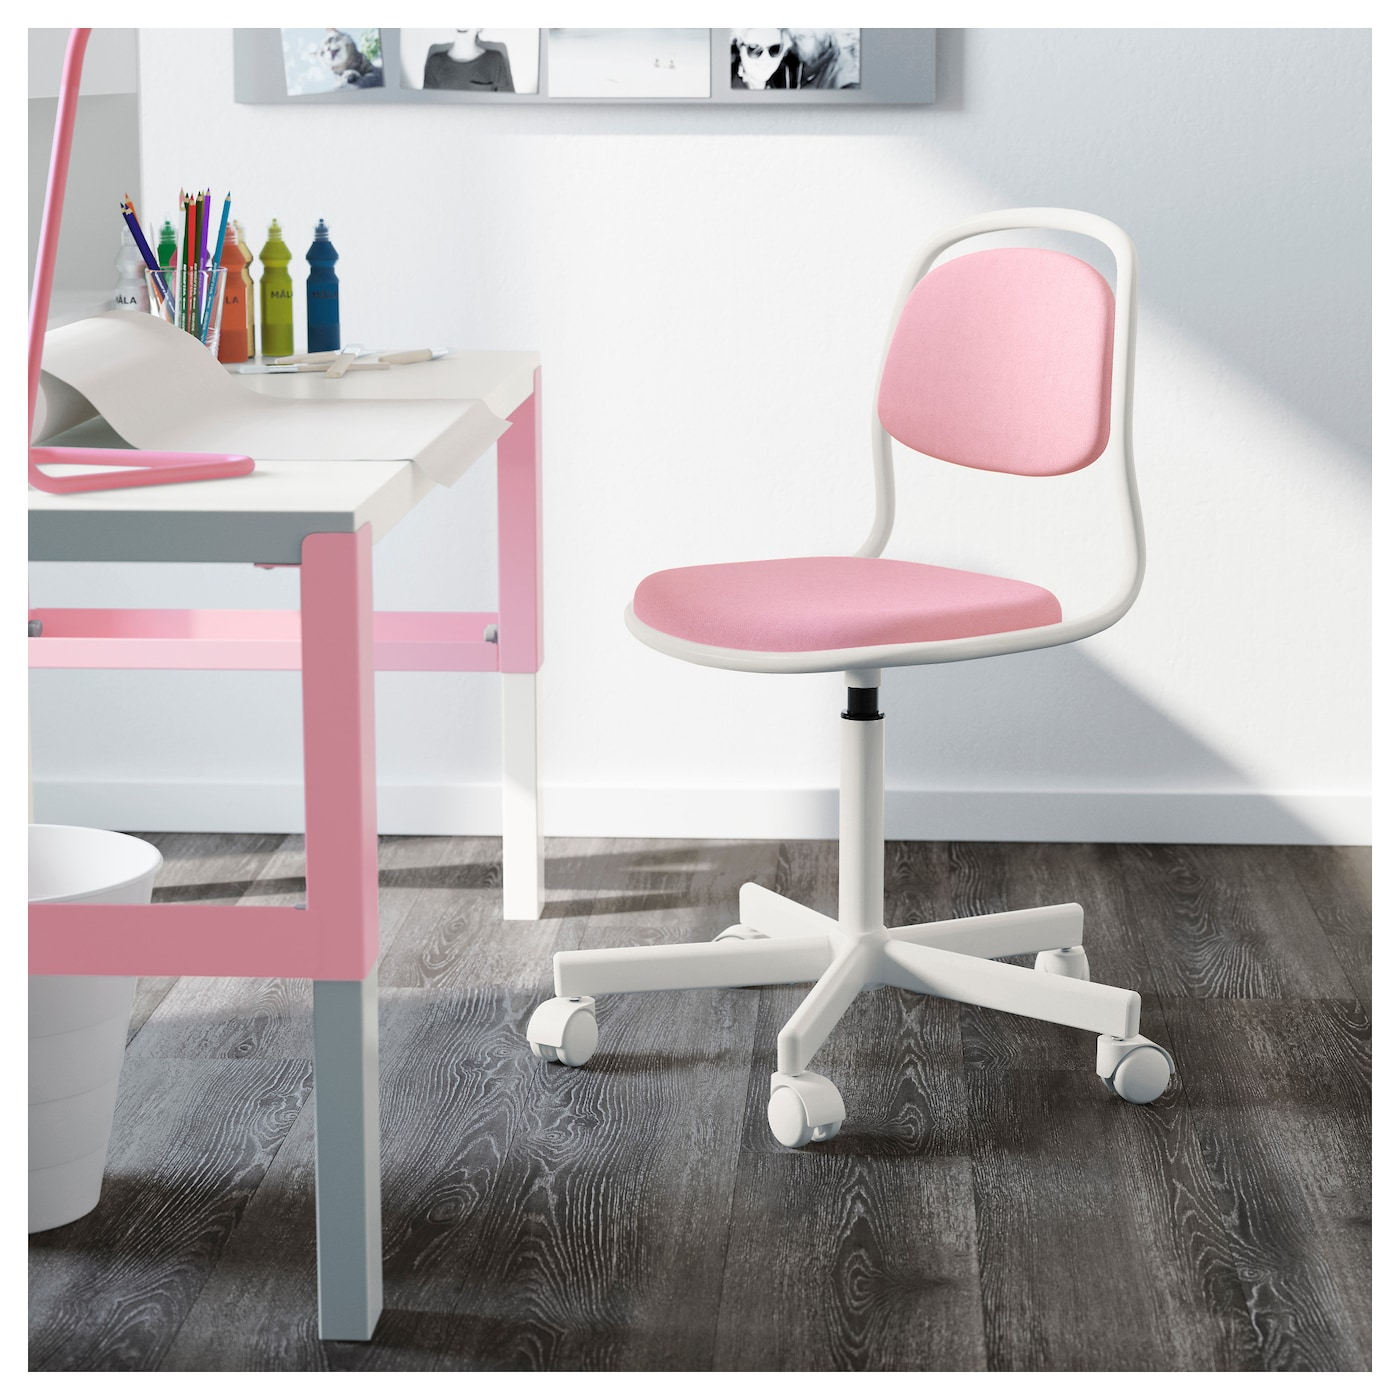 Ikea ÖrfjÄll Children S Desk Chair You Sit Comfortably Since The Is Adjule In Height